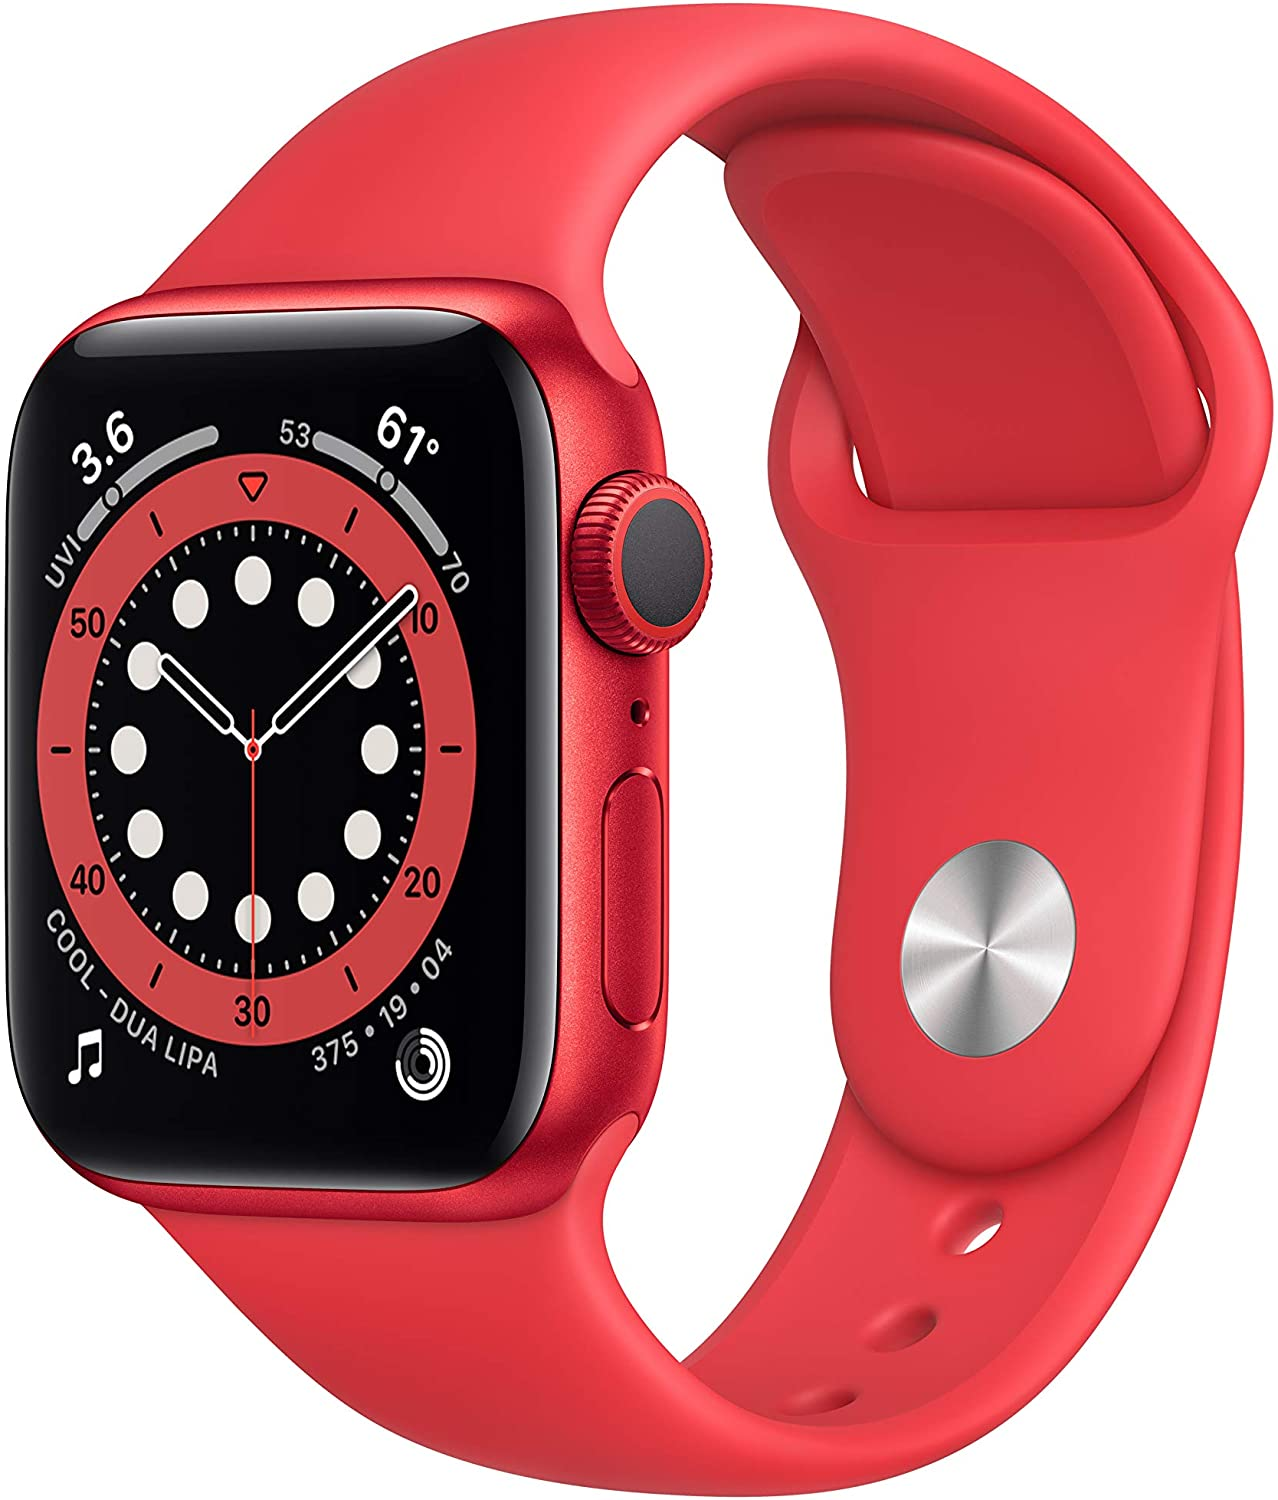 Apple Watch Series 6 Drops to Just $319.99 on Amazon; Supports ECG, Always-on Retina Display, Blood Oxygen Monitor & More